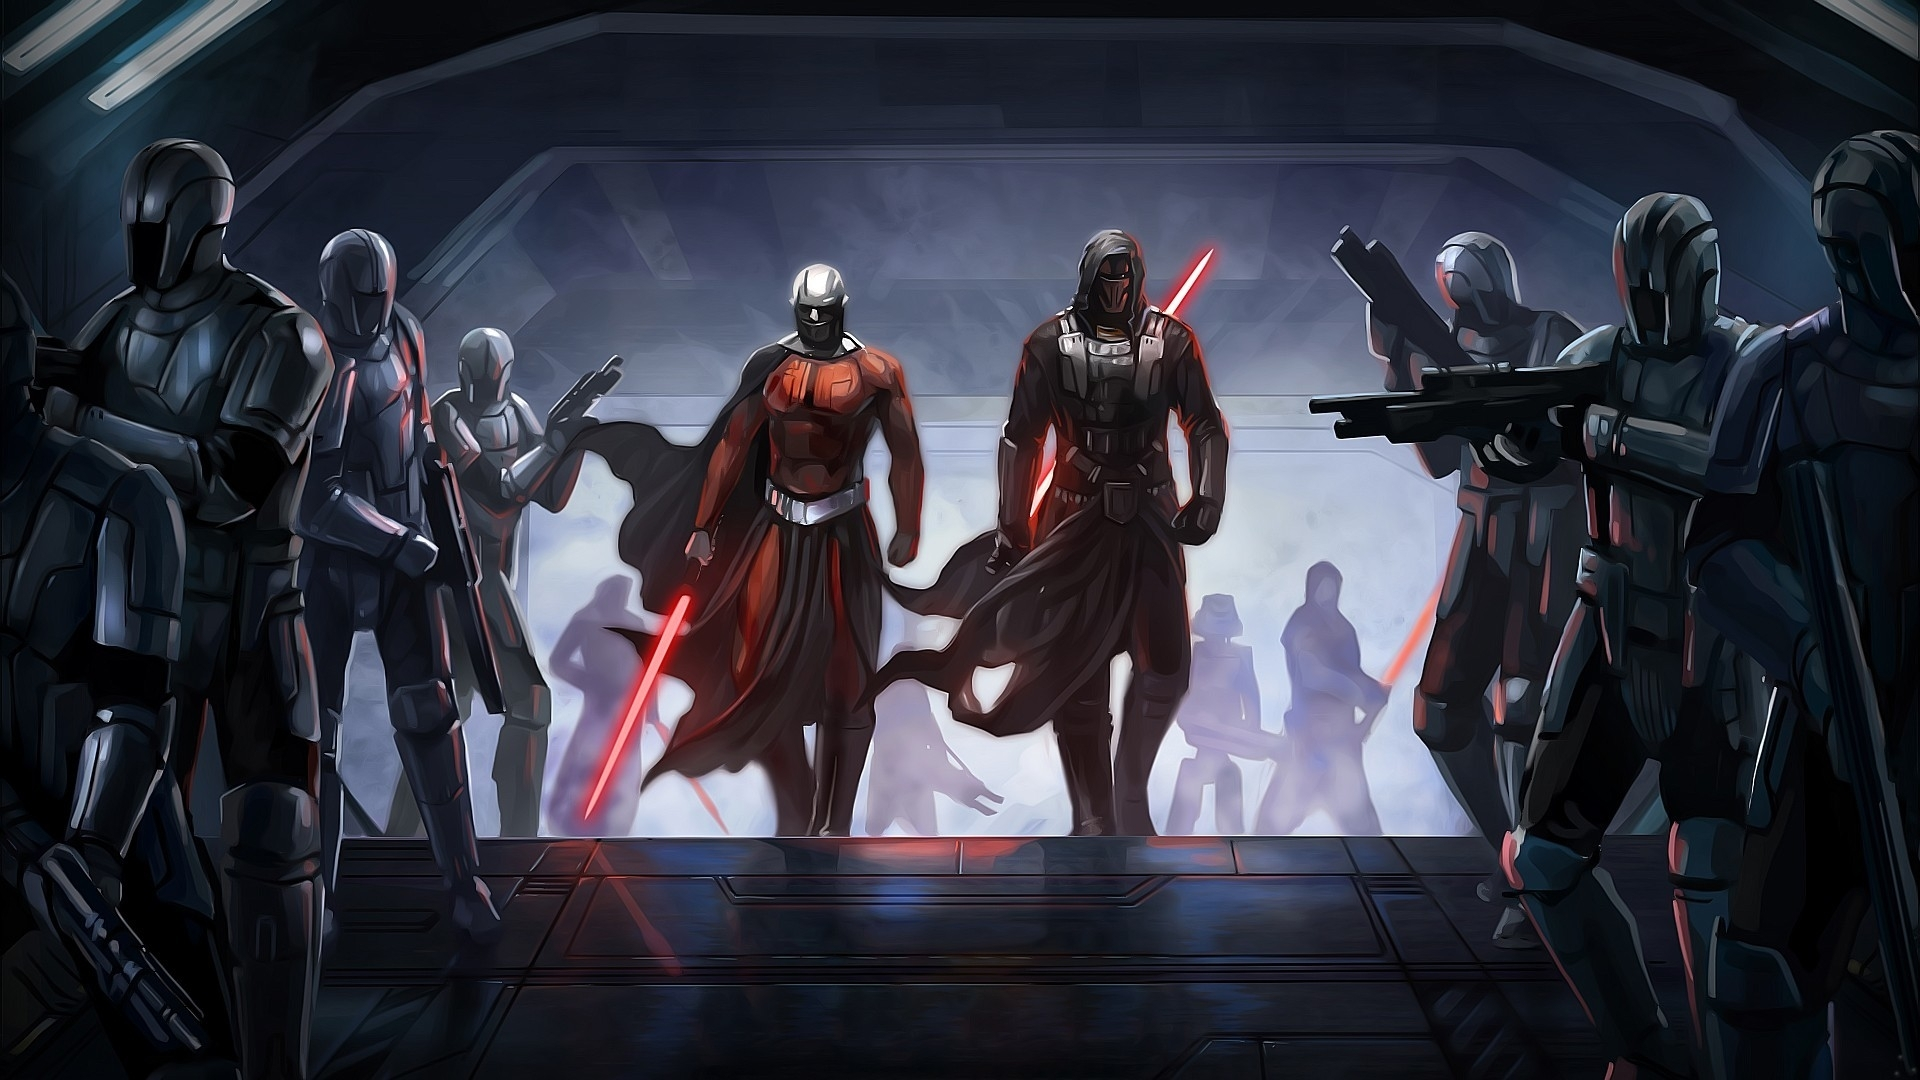 star wars revan wallpaper (74+ images)